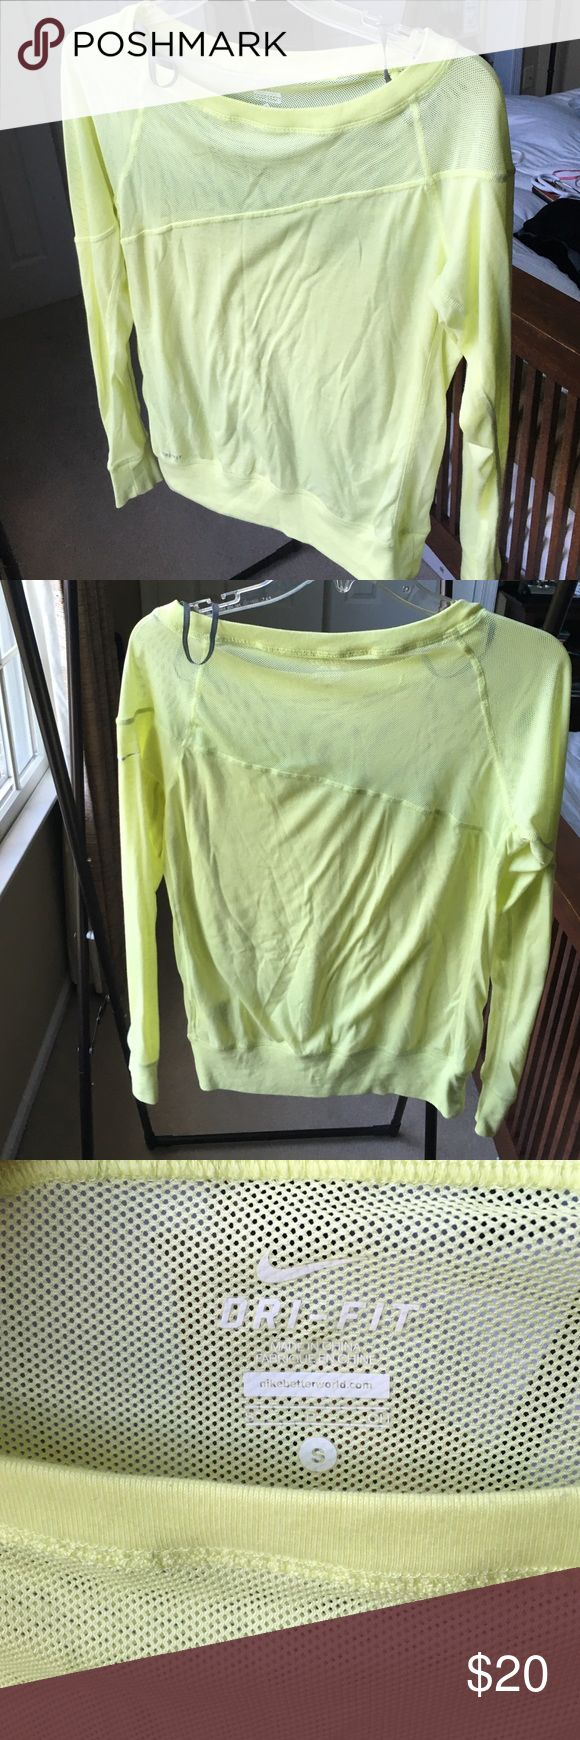 Nike Dry Fit workout top You can't miss this Neon colored workout top. Nike dry fit technology. Mesh top with asymmetrical hem across front and back. Fabric is 75% polyester 13% cotton and 12% rayon. Great condition! Back of shirt top right there is a gathering of the mesh stitch, but that was there when I bought it Nike Tops Tees - Long Sleeve